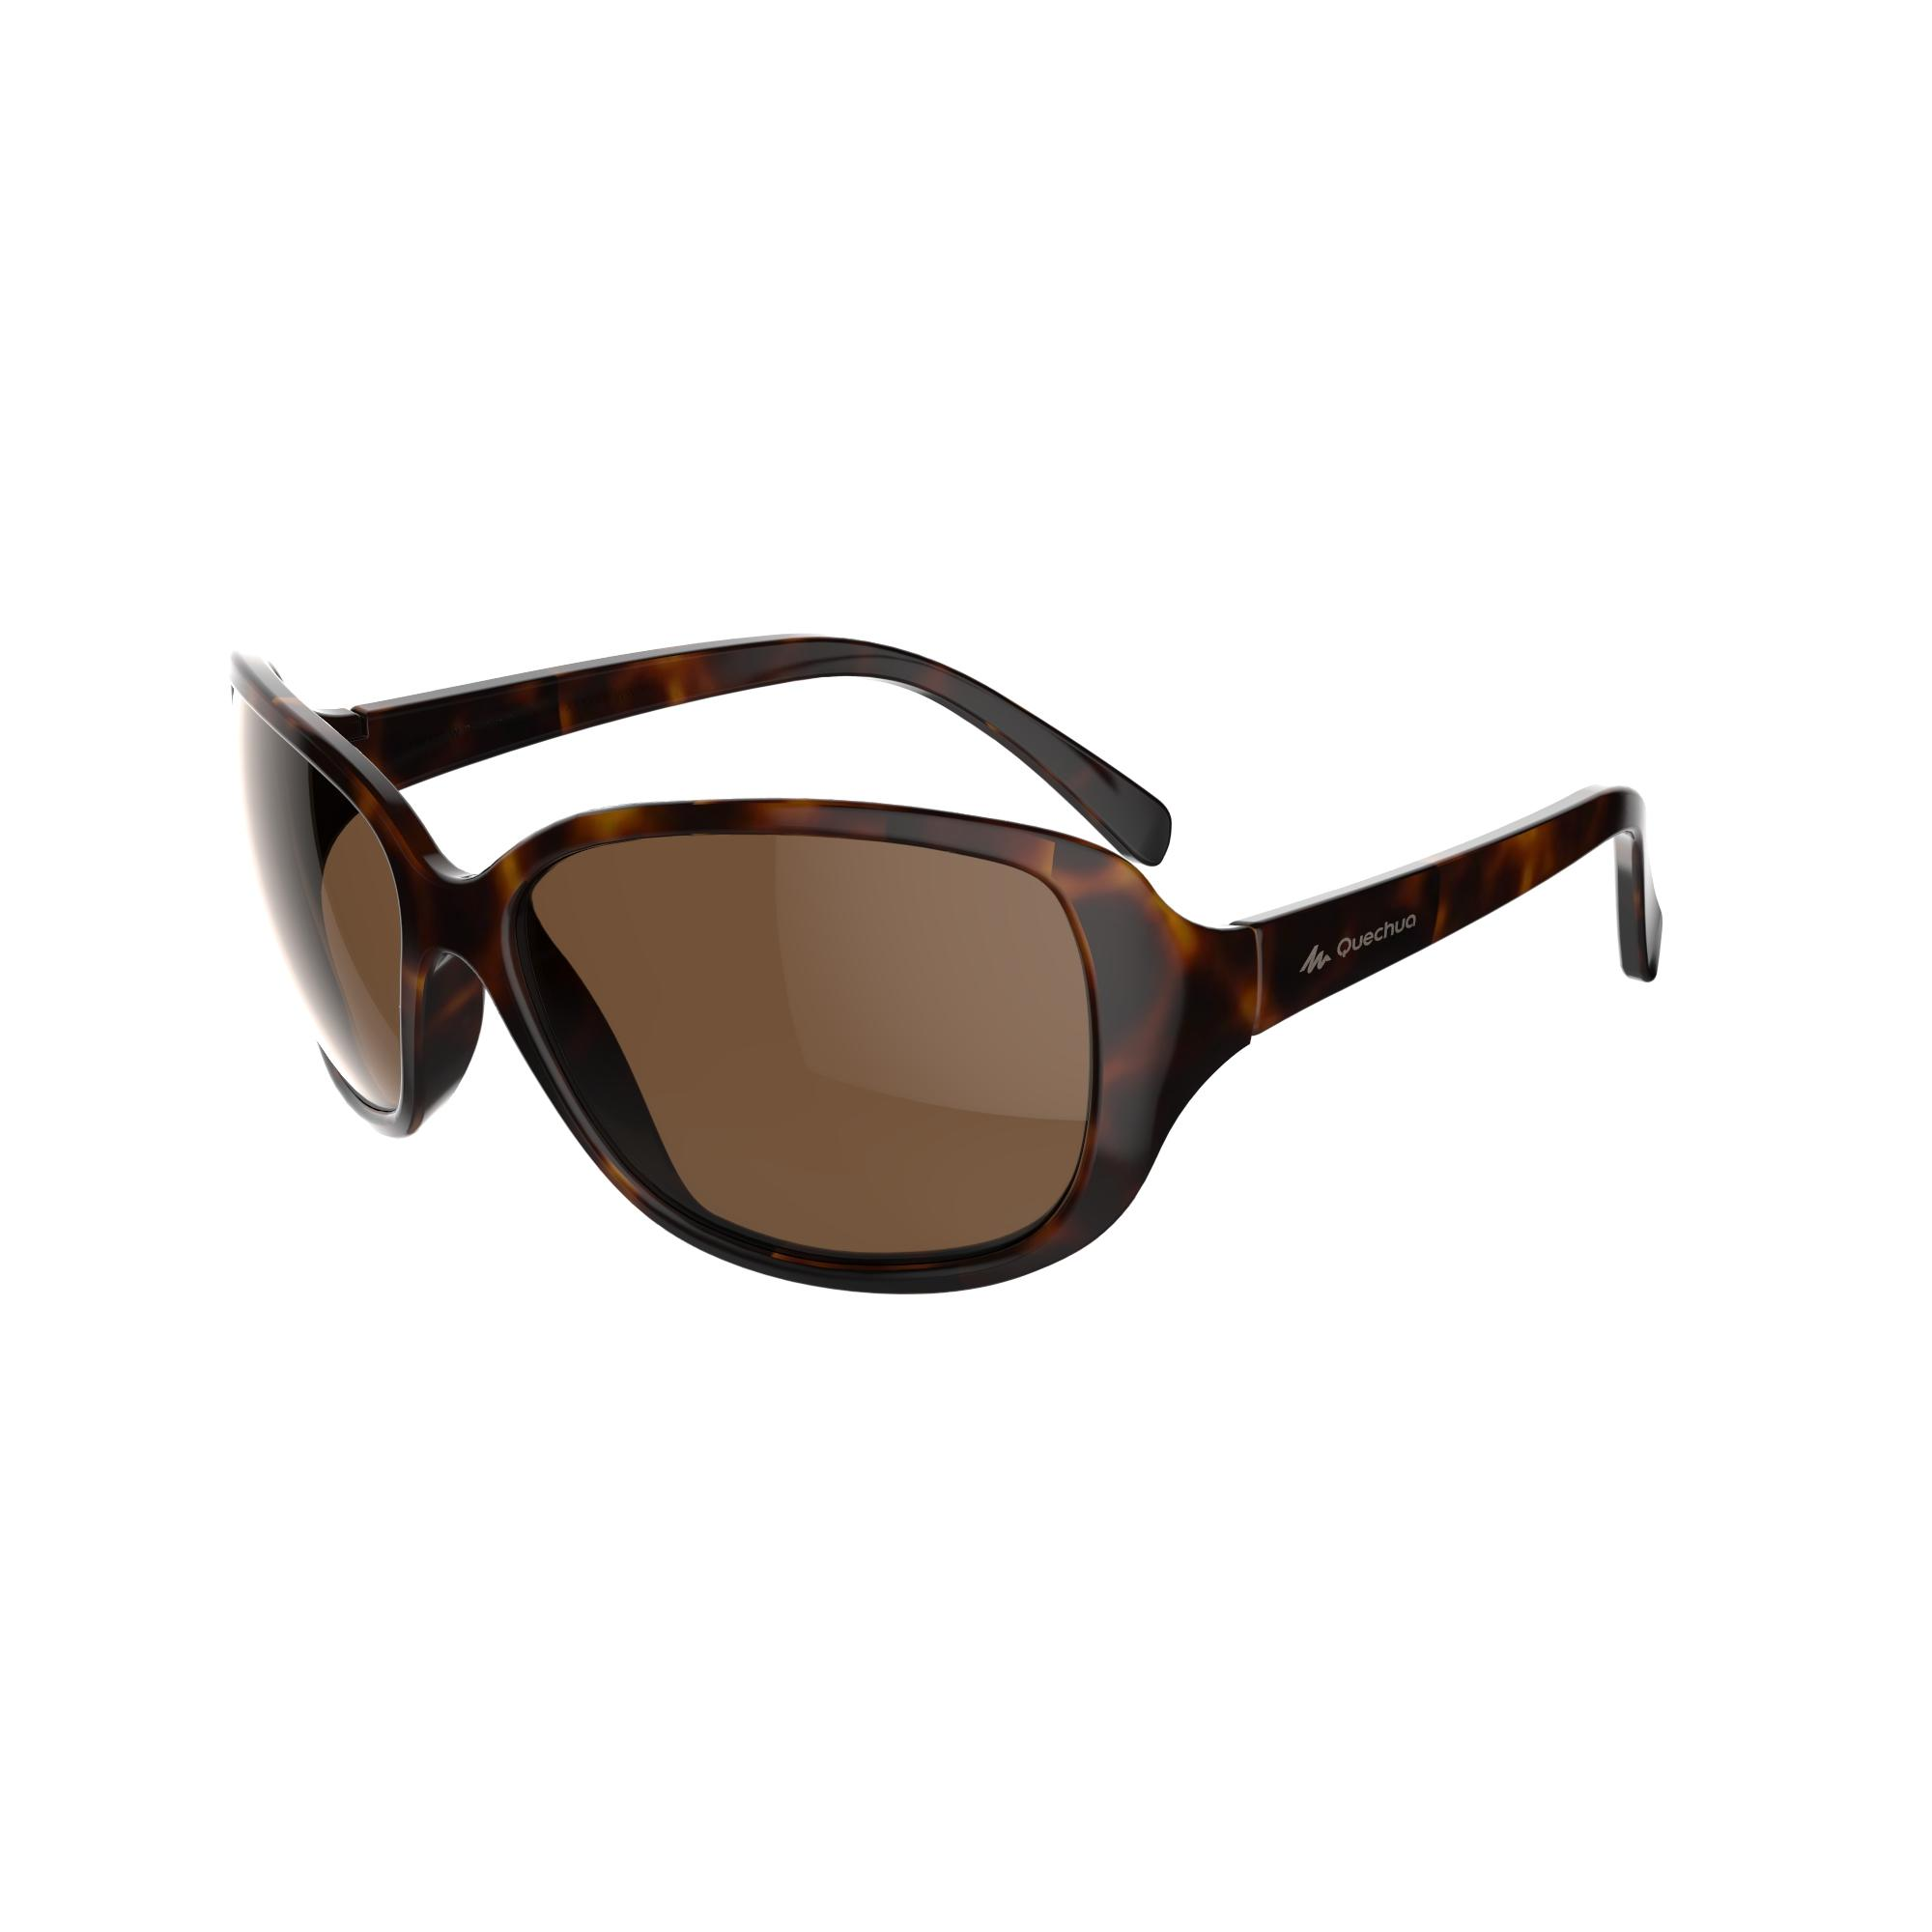 MH530 Women's Category 3 Polarising Hiking Sunglasses - Brown